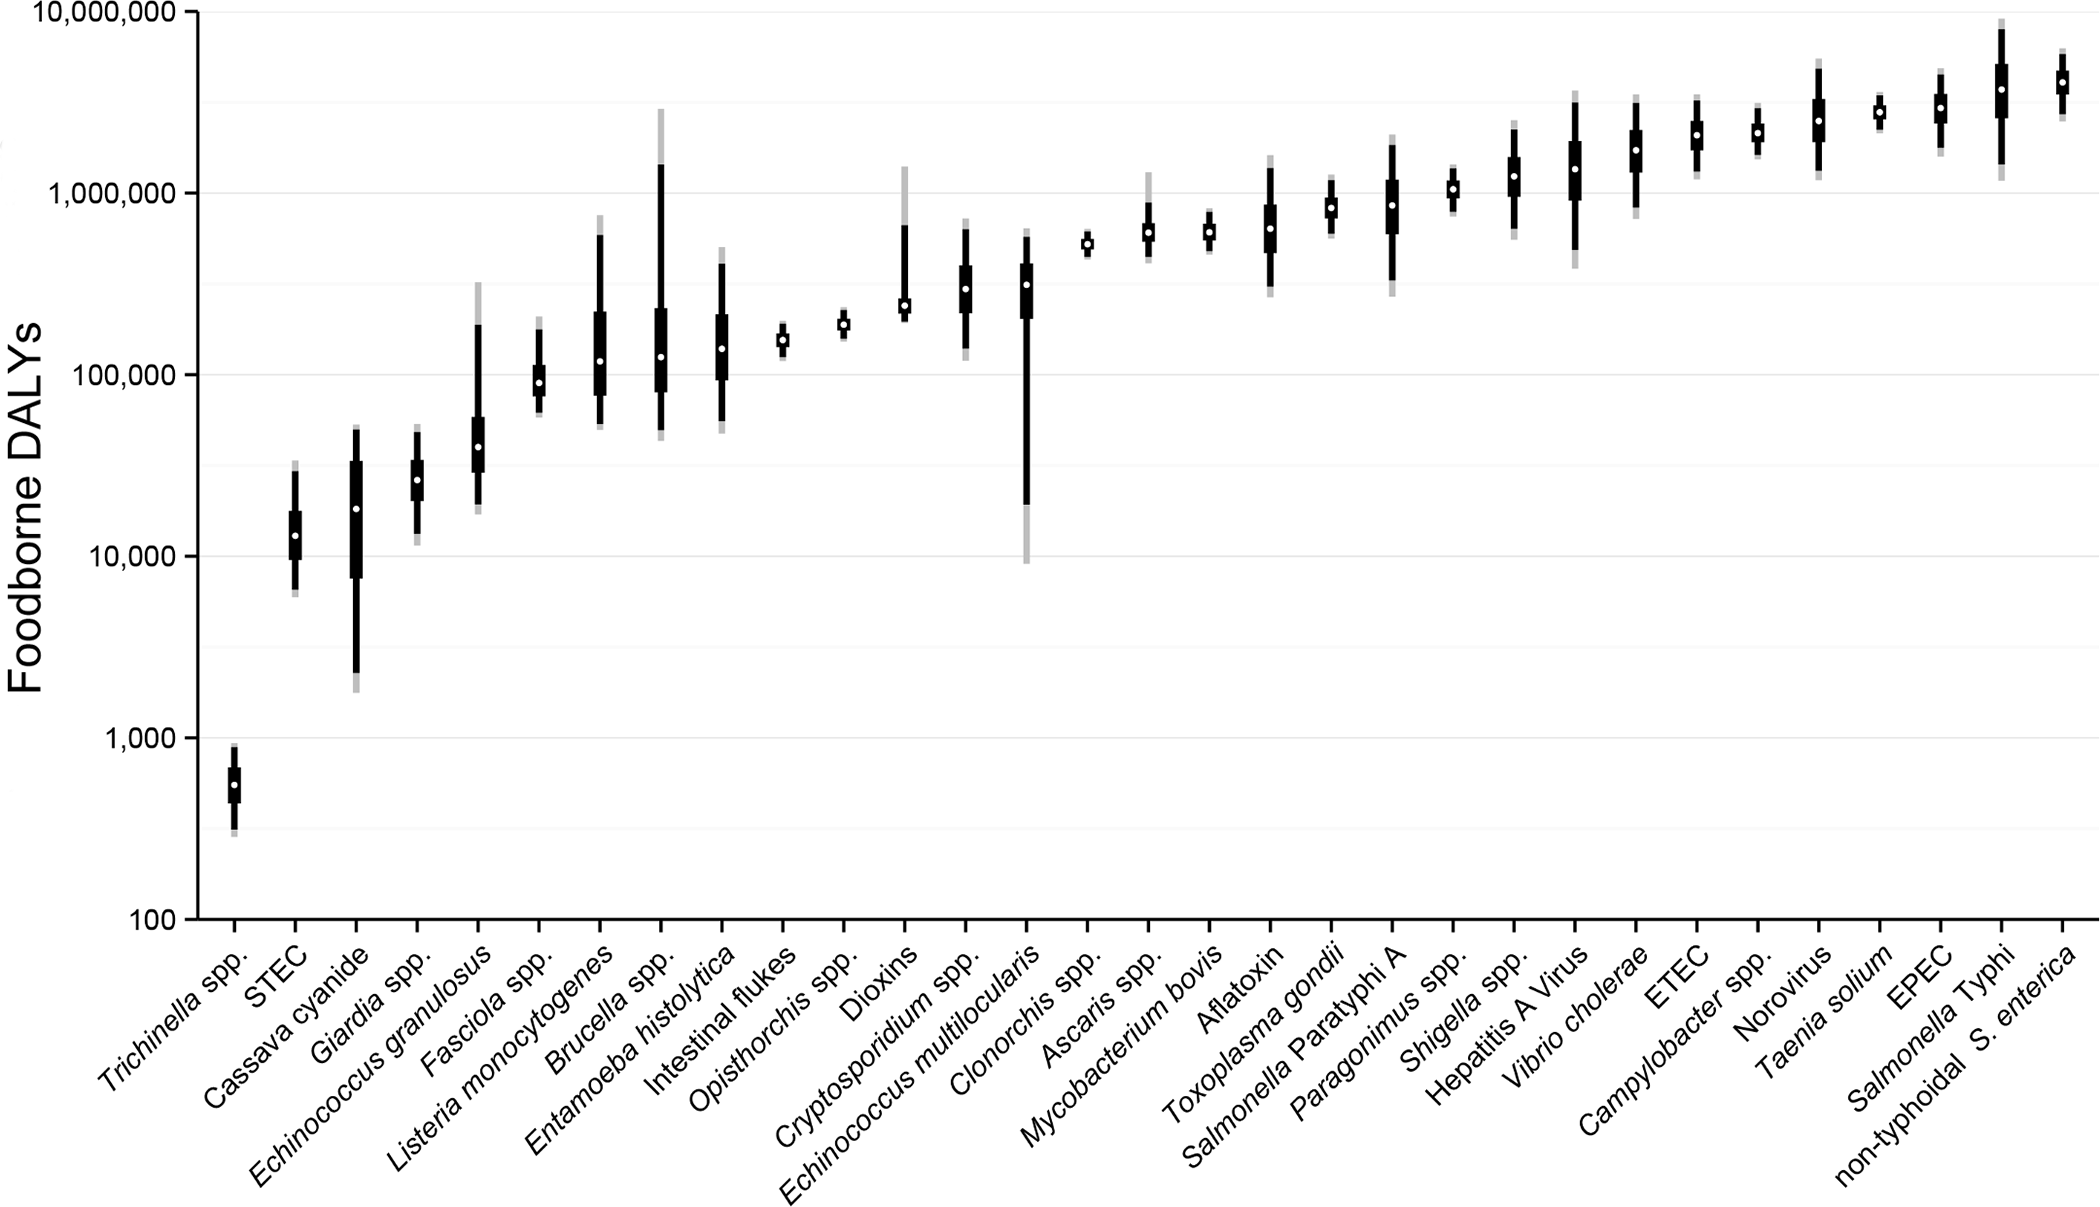 Ranking of foodborne hazards globally for 2010, expressed as Disability Adjusted Life Years.